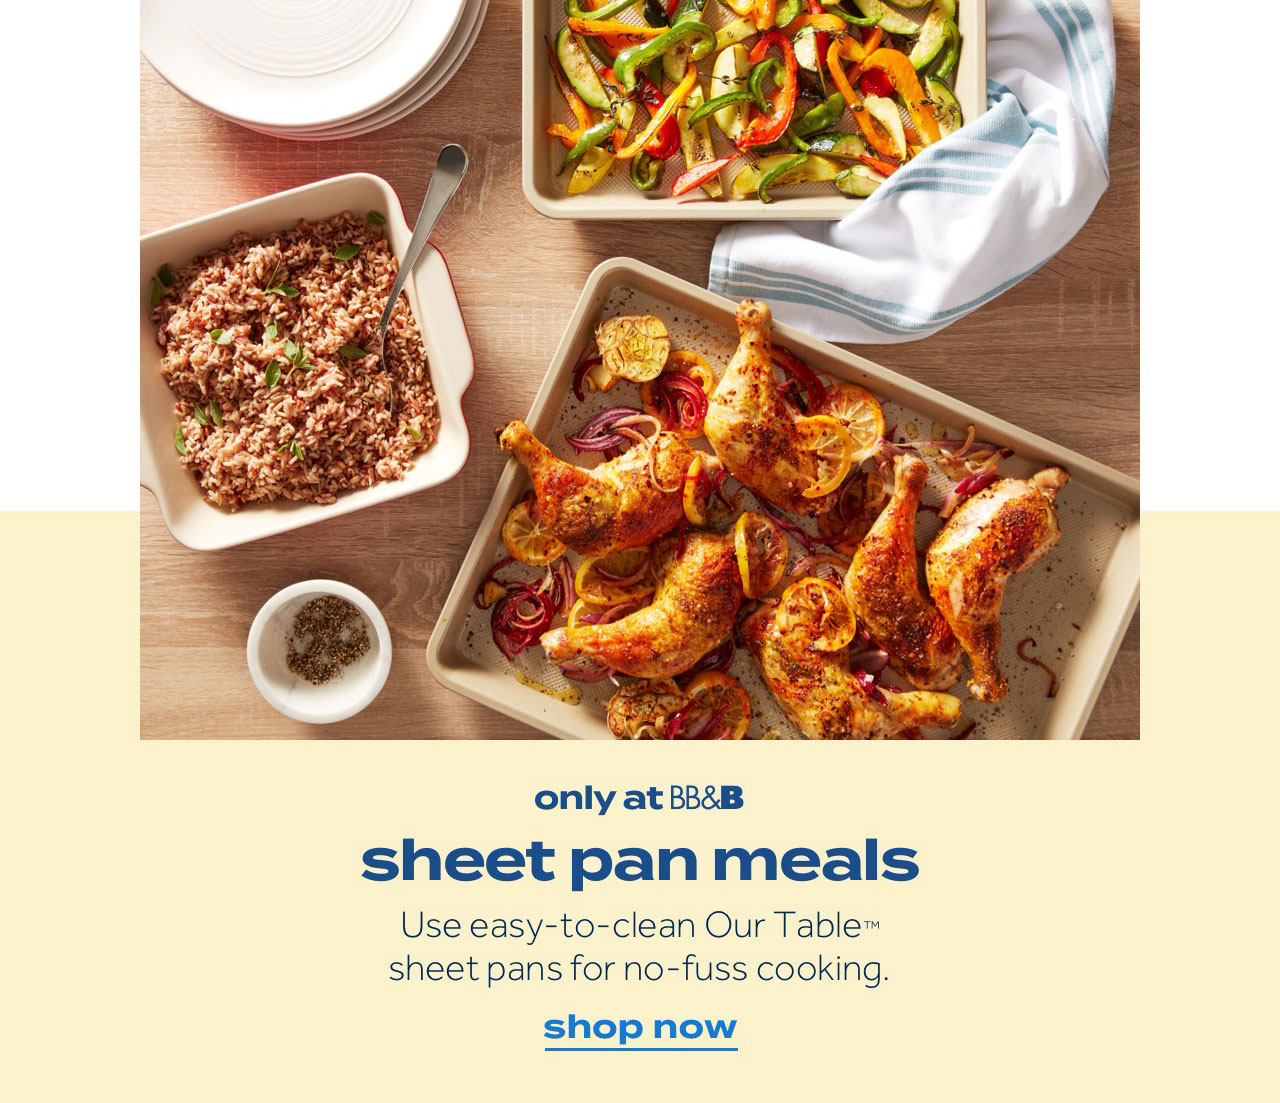 only at BB&B | sheet pan meals | Use easy-to-clean Our Table™ sheet pans for no-fuss cooking. | shop now